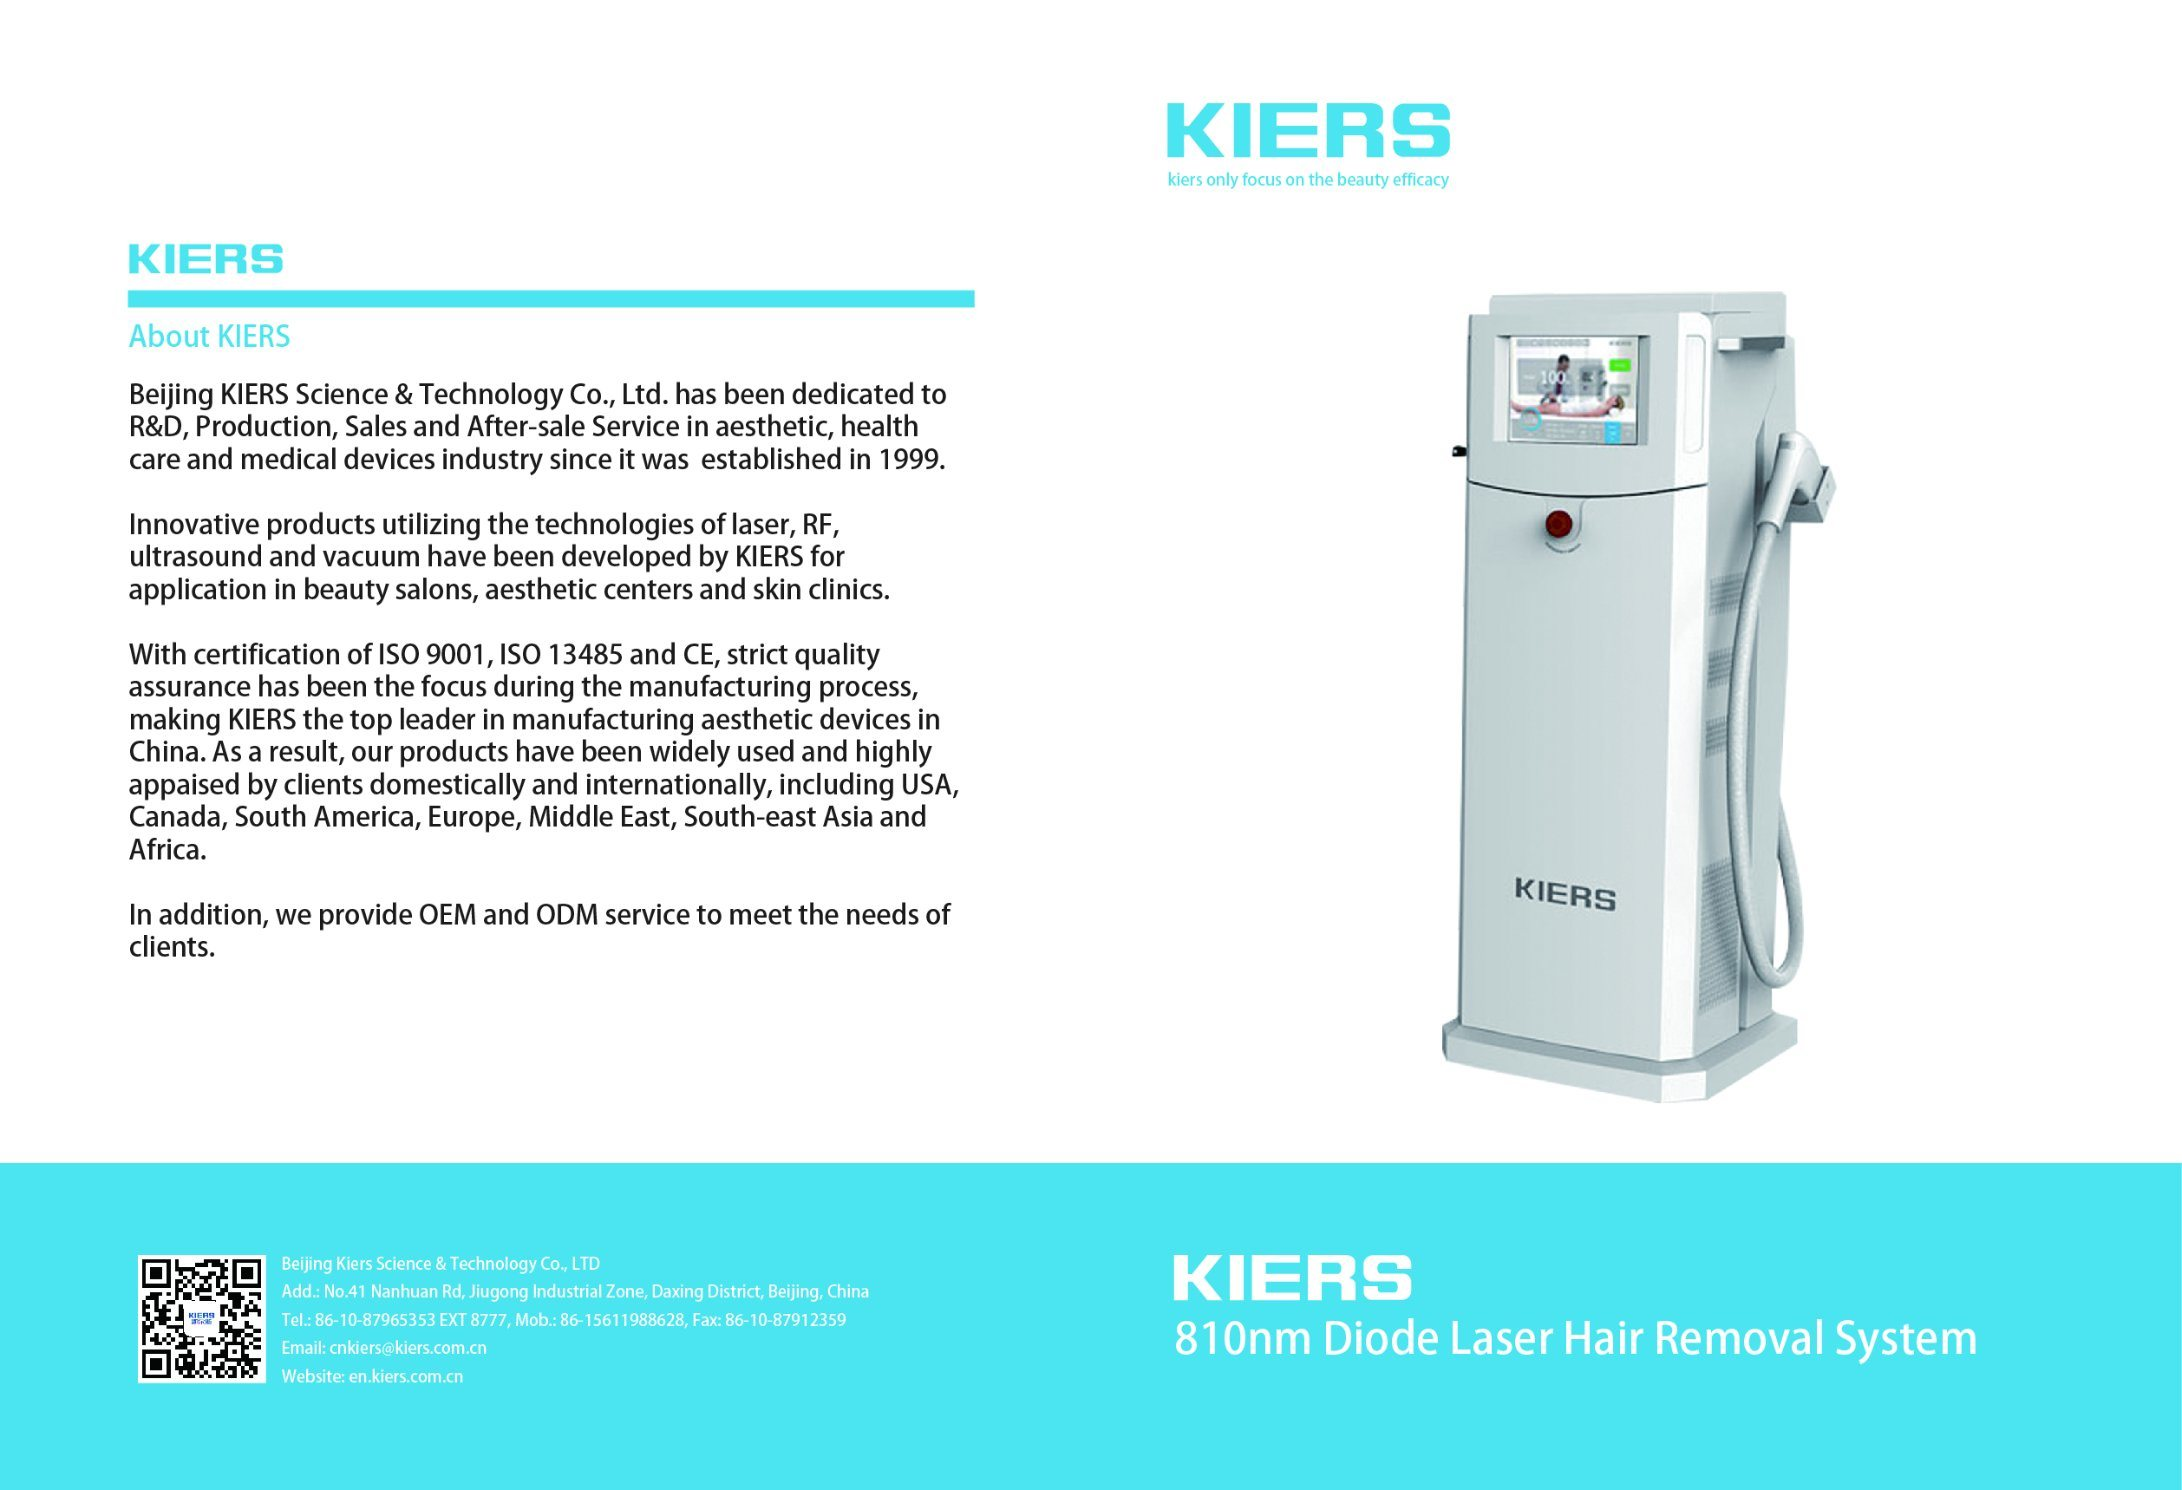 808/810 Diode Laser Hair Removal System